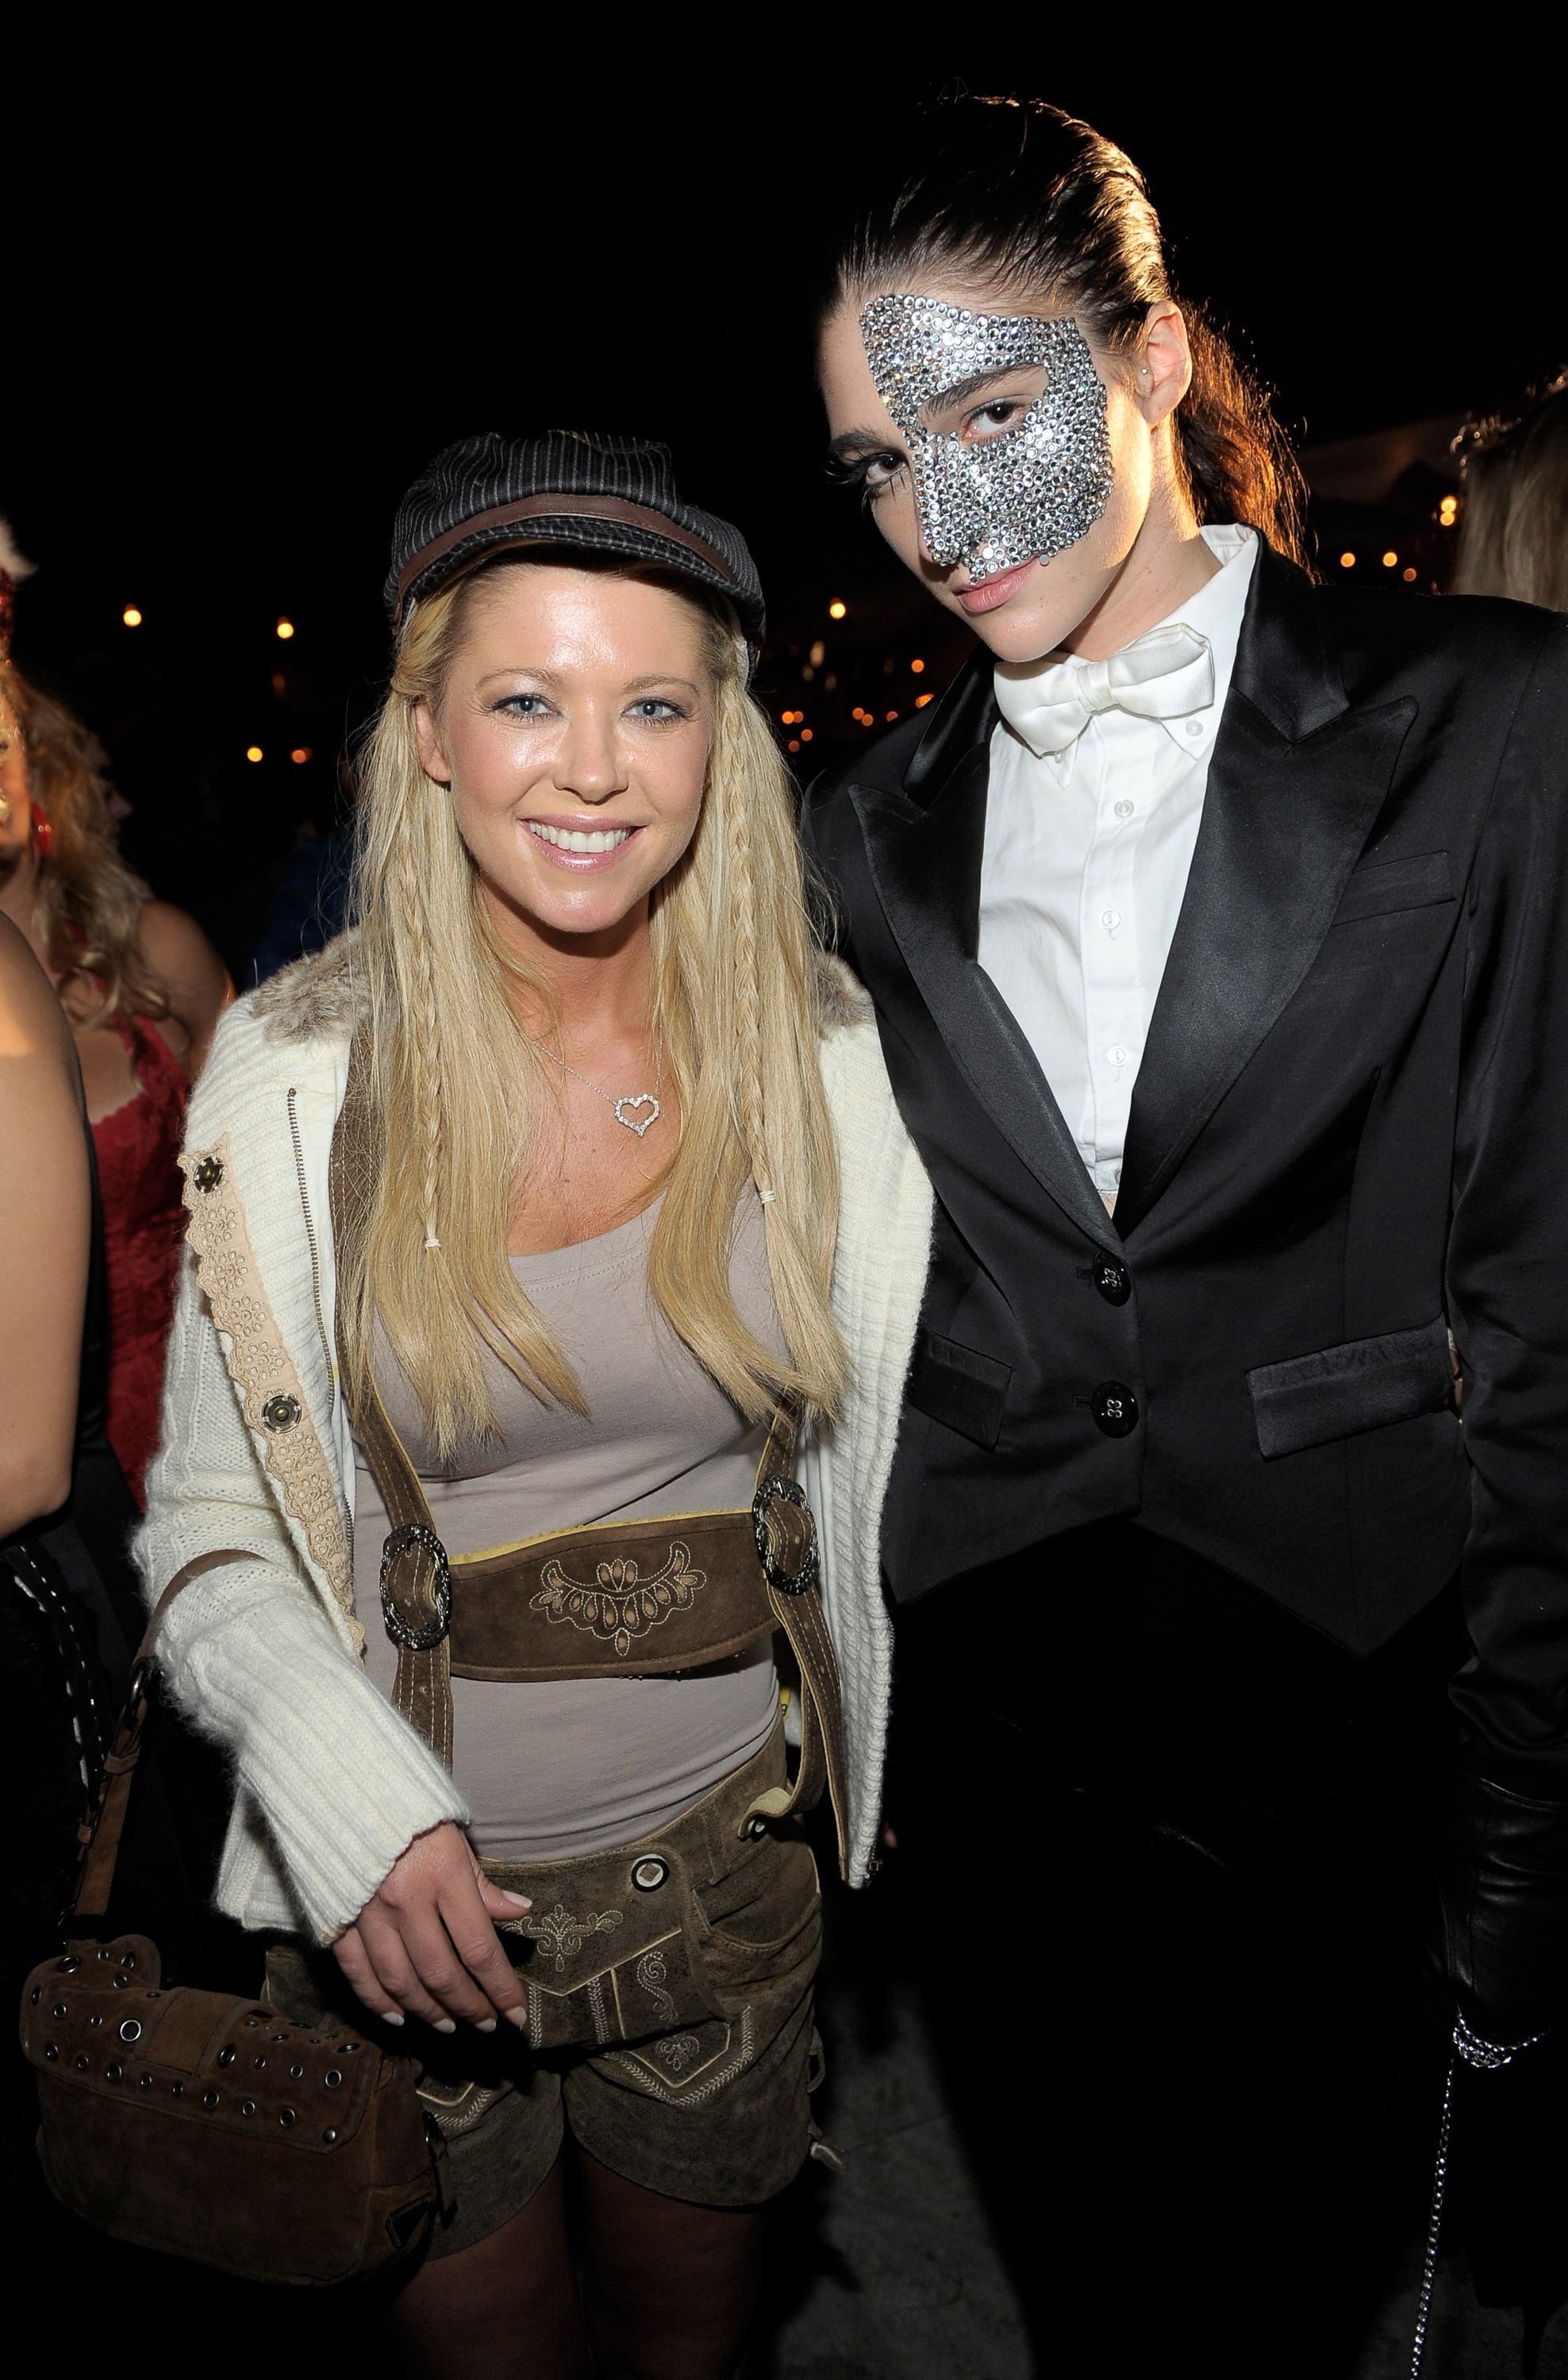 Tara Reid was out and about for Halloween.